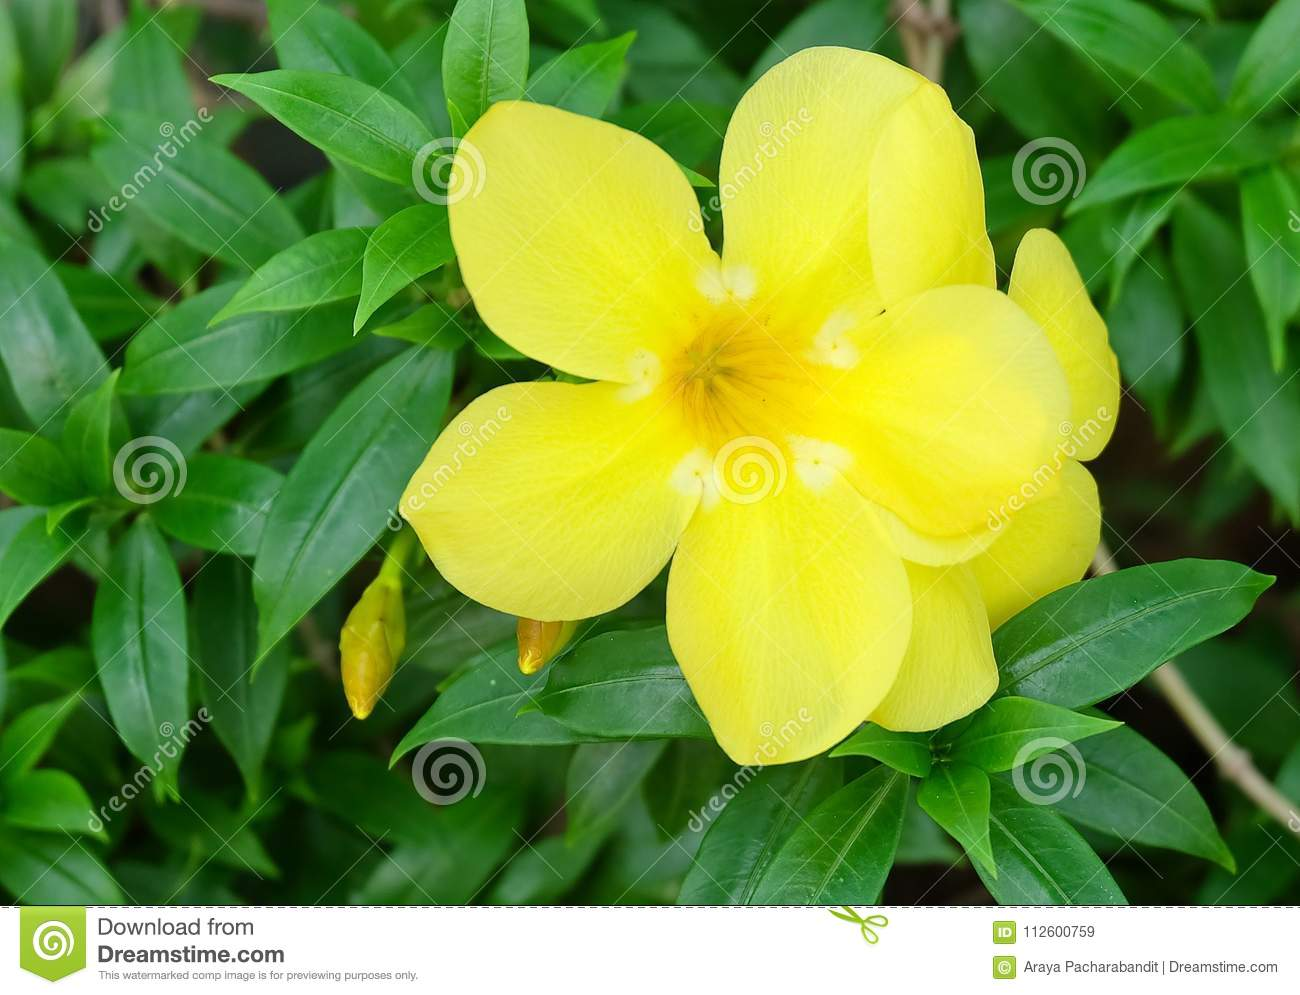 Yellow sage rose flowers with green leaves stock image image of download yellow sage rose flowers with green leaves stock image image of corolla branch mightylinksfo